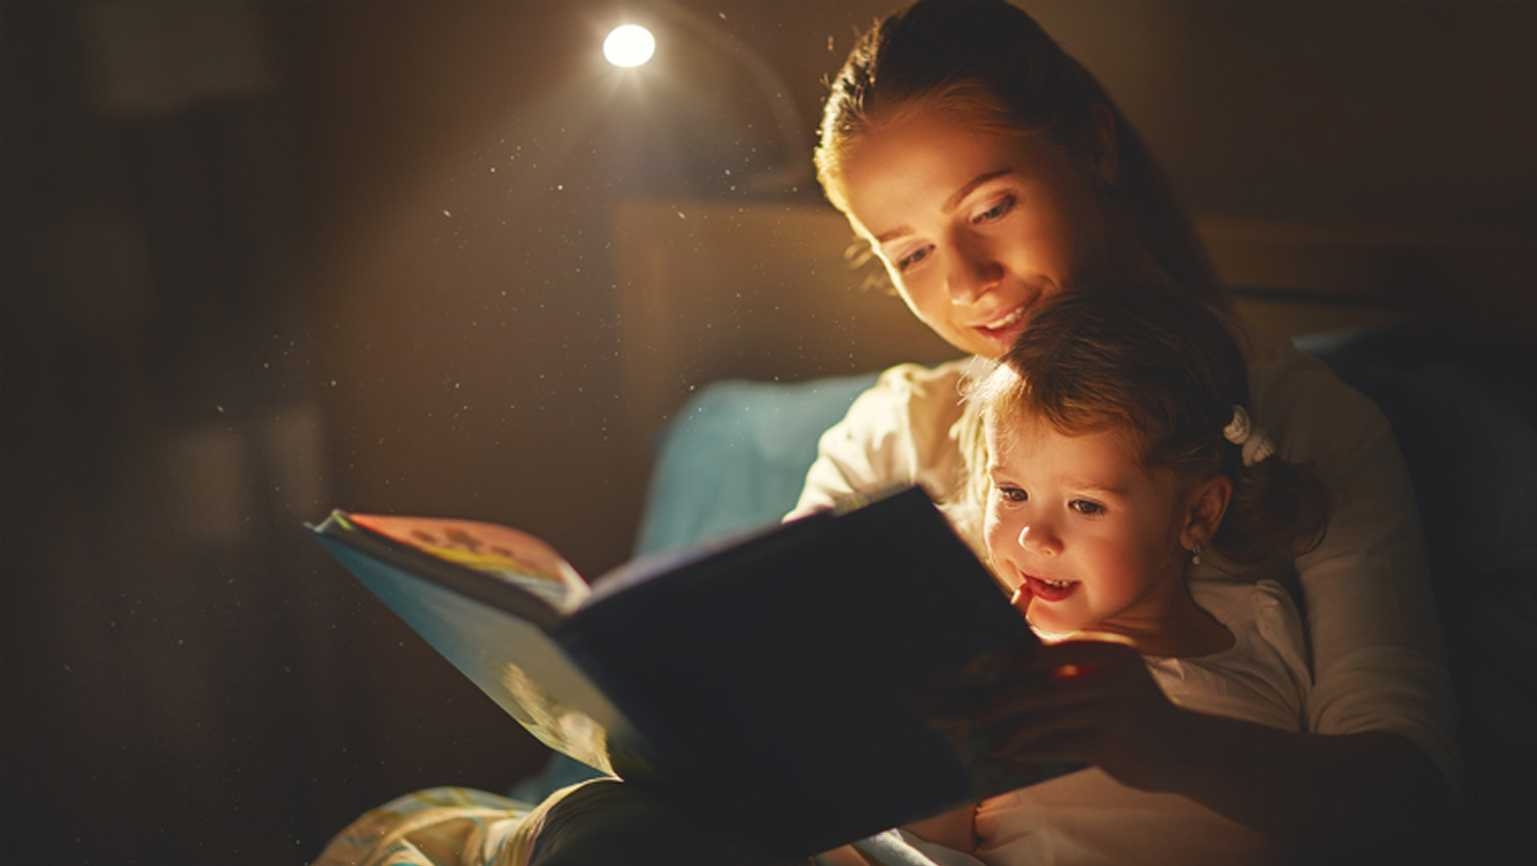 A young mother reading a bedtime story to her daughter.